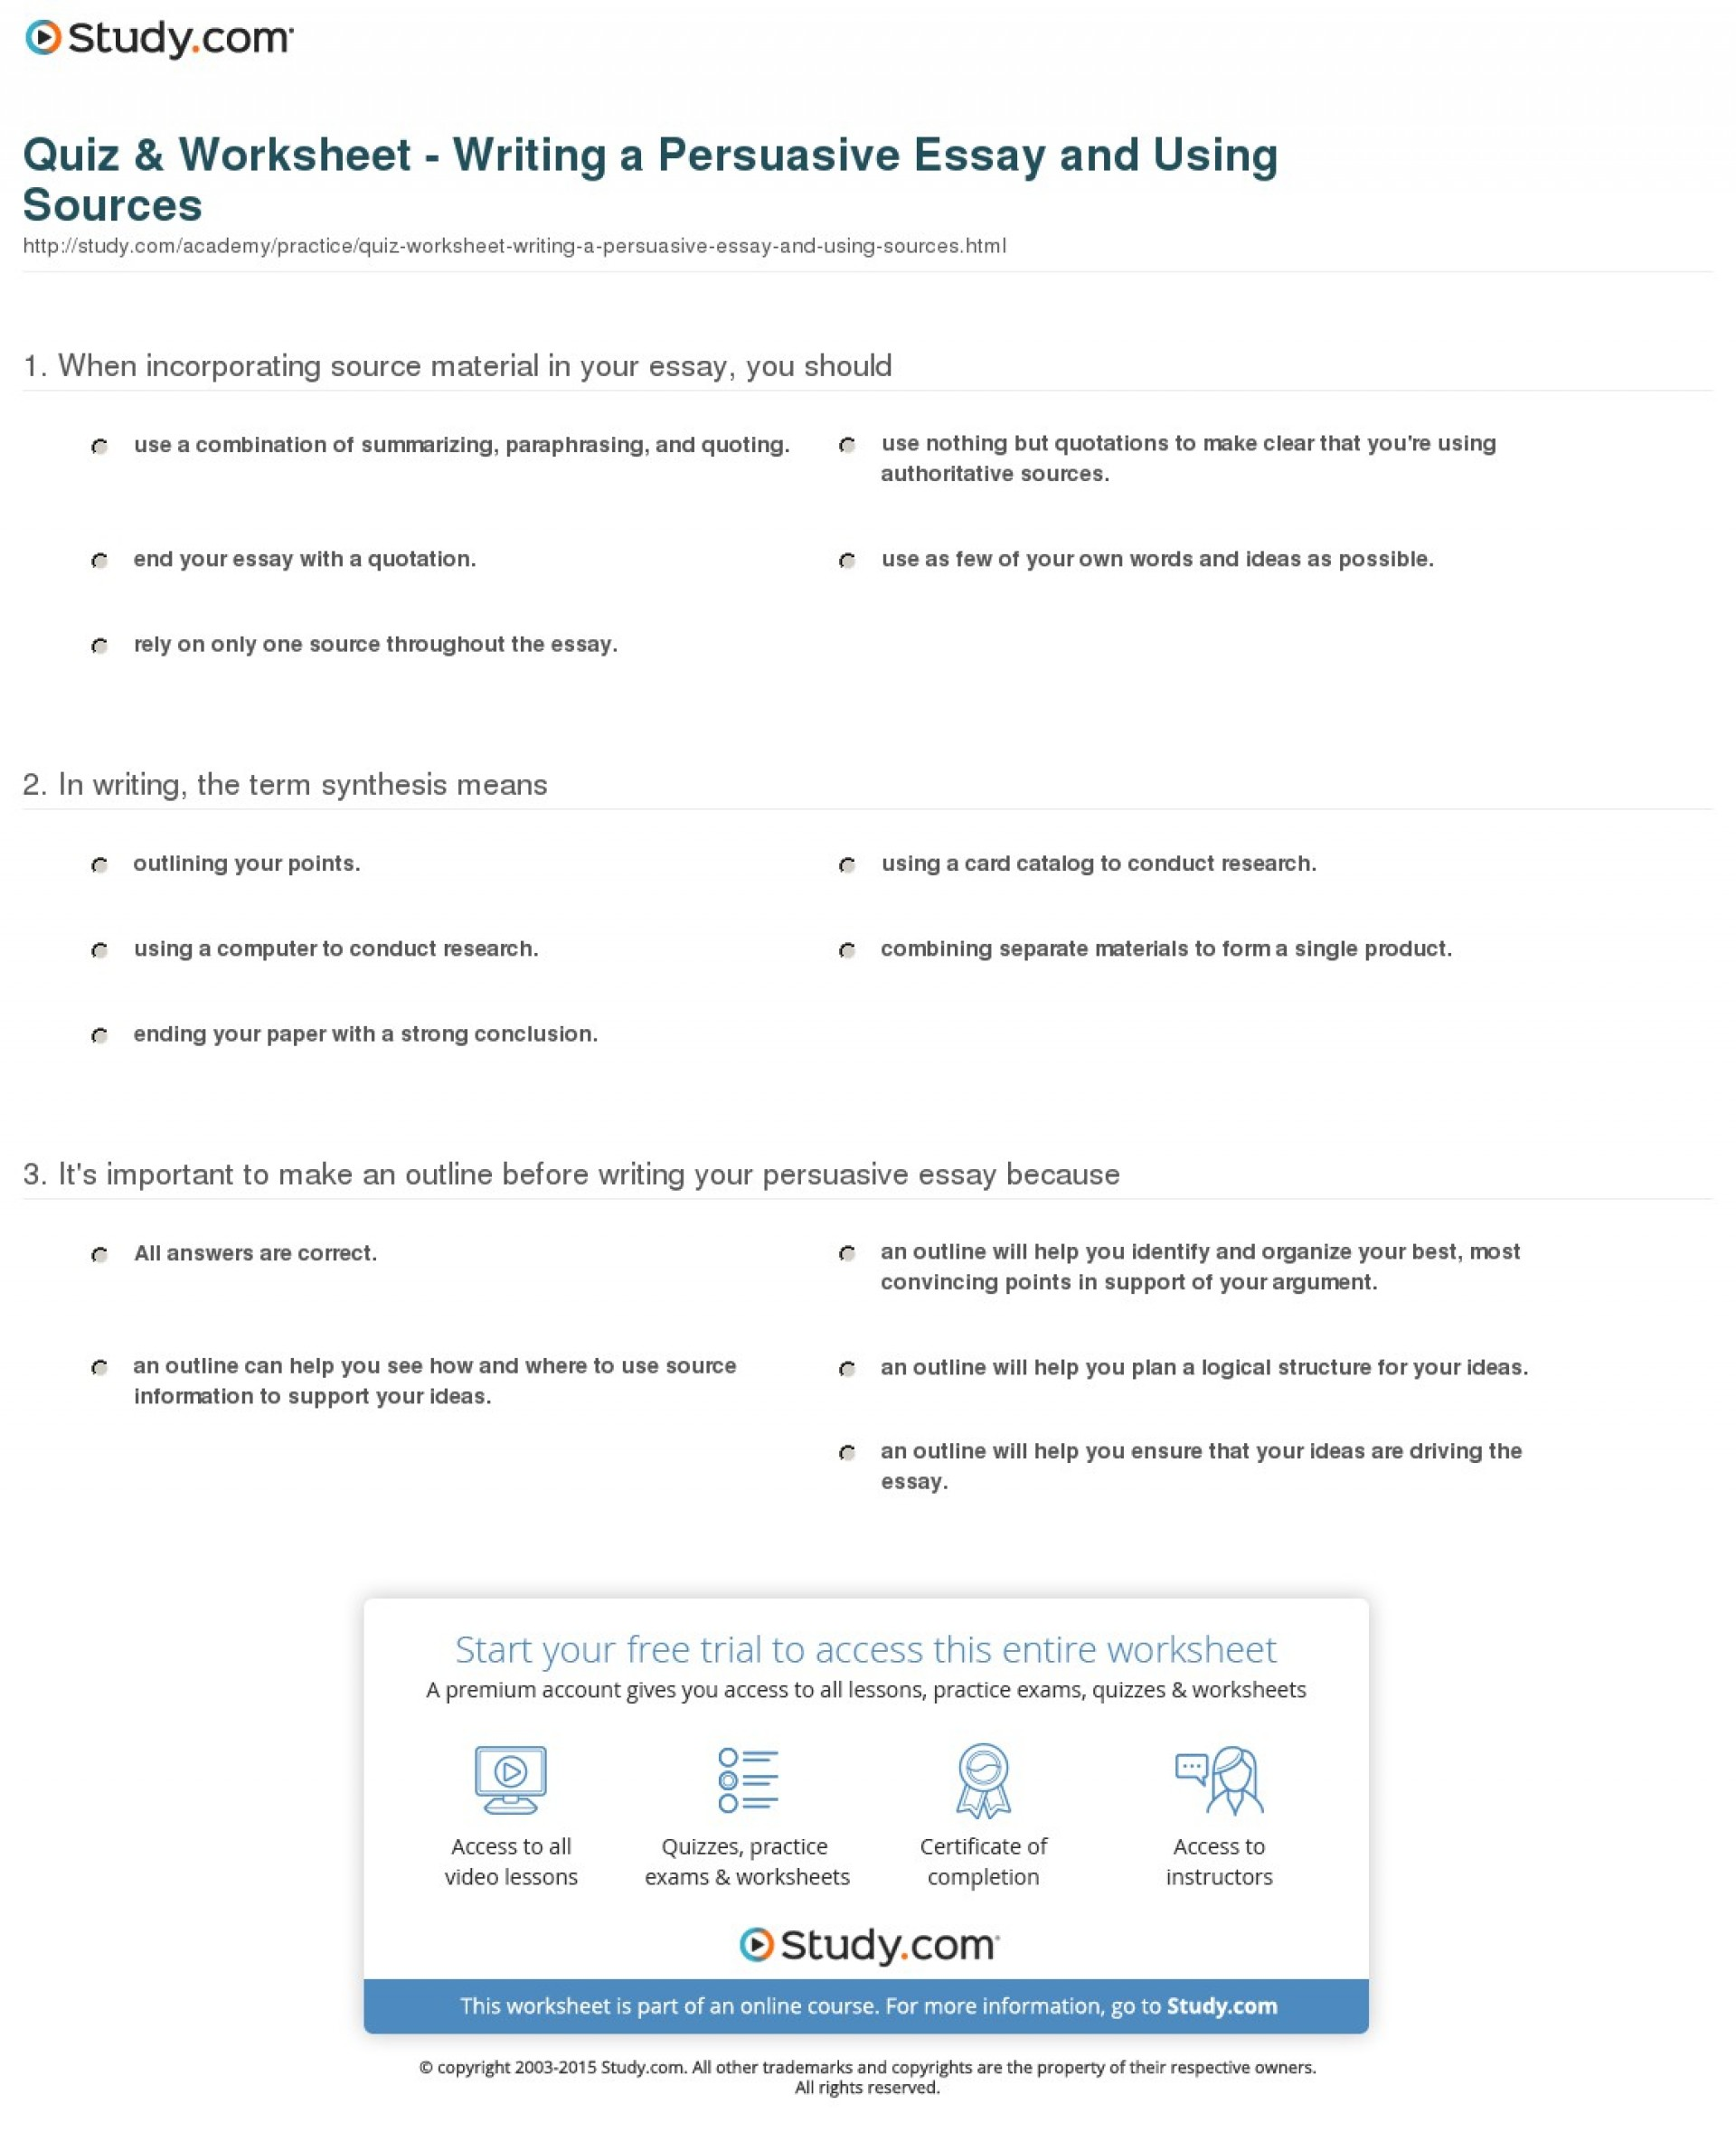 024 Persuasive Essay Example Quiz Worksheet Writing And Using Formidable A Outline Of On Gun Control 1920